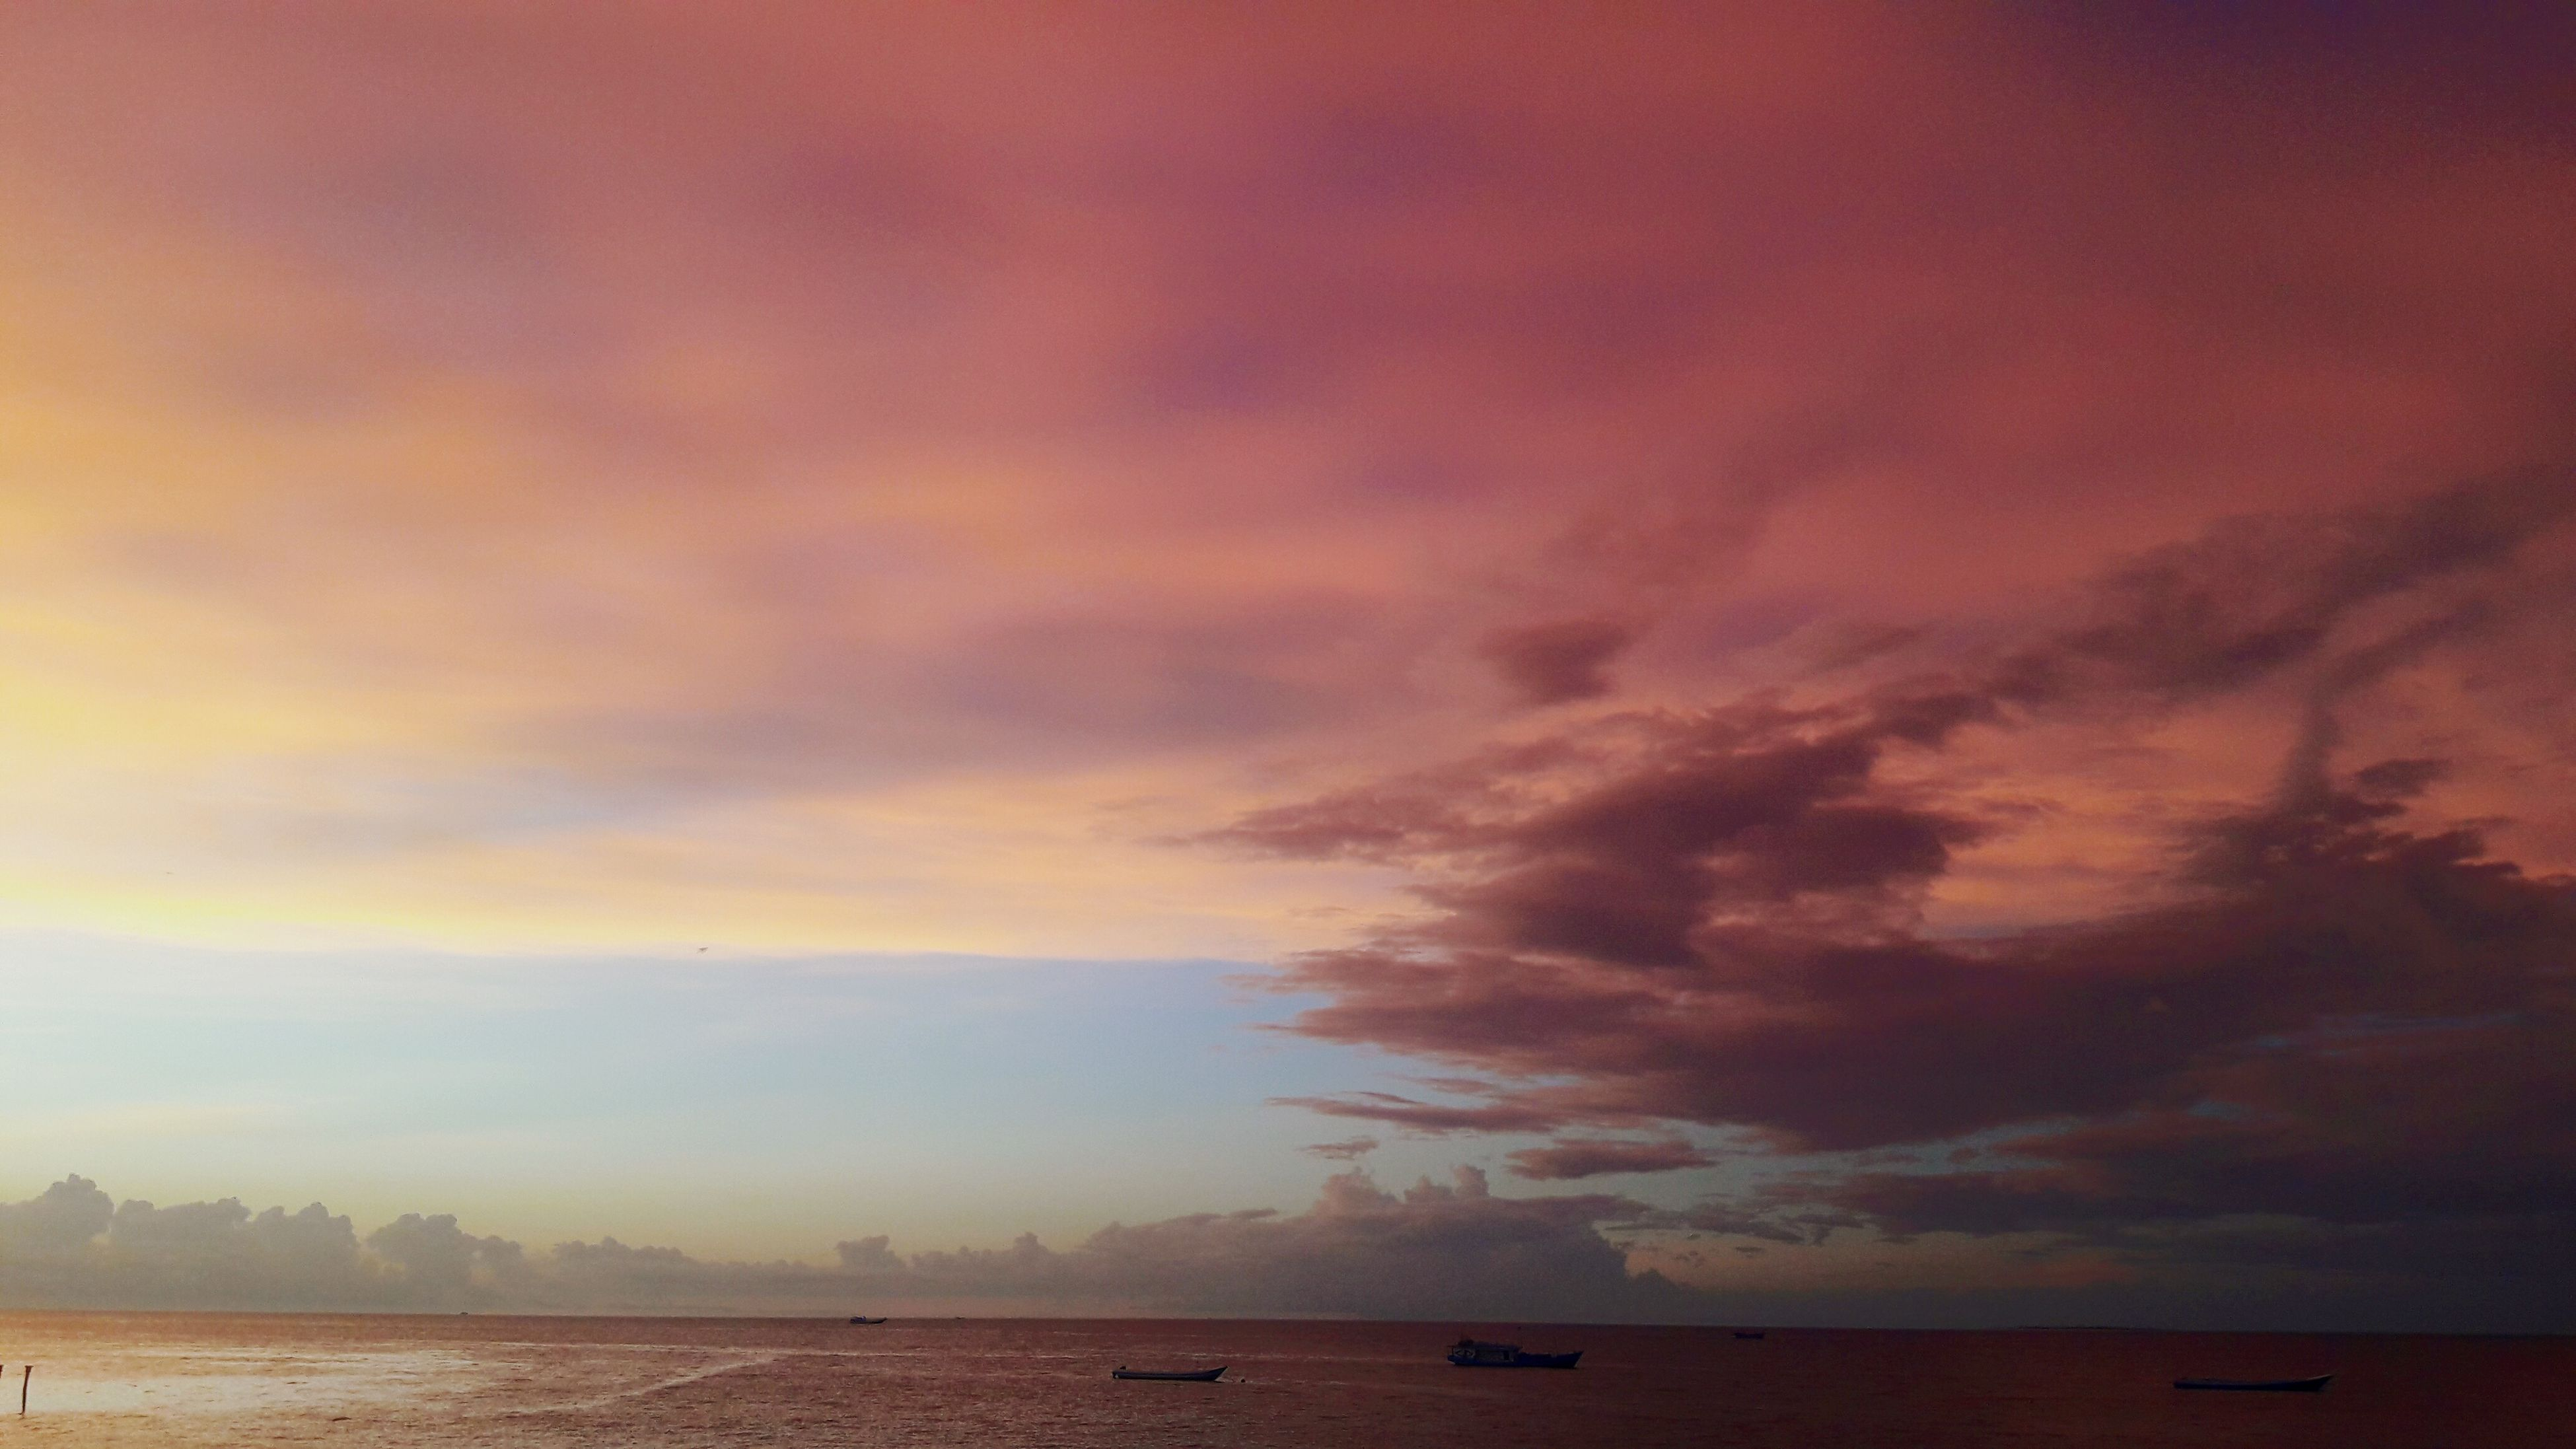 sea, water, sunset, beauty in nature, tranquility, cloud - sky, scenics, tranquil scene, nature, sky, outdoors, no people, horizon over water, beach, day